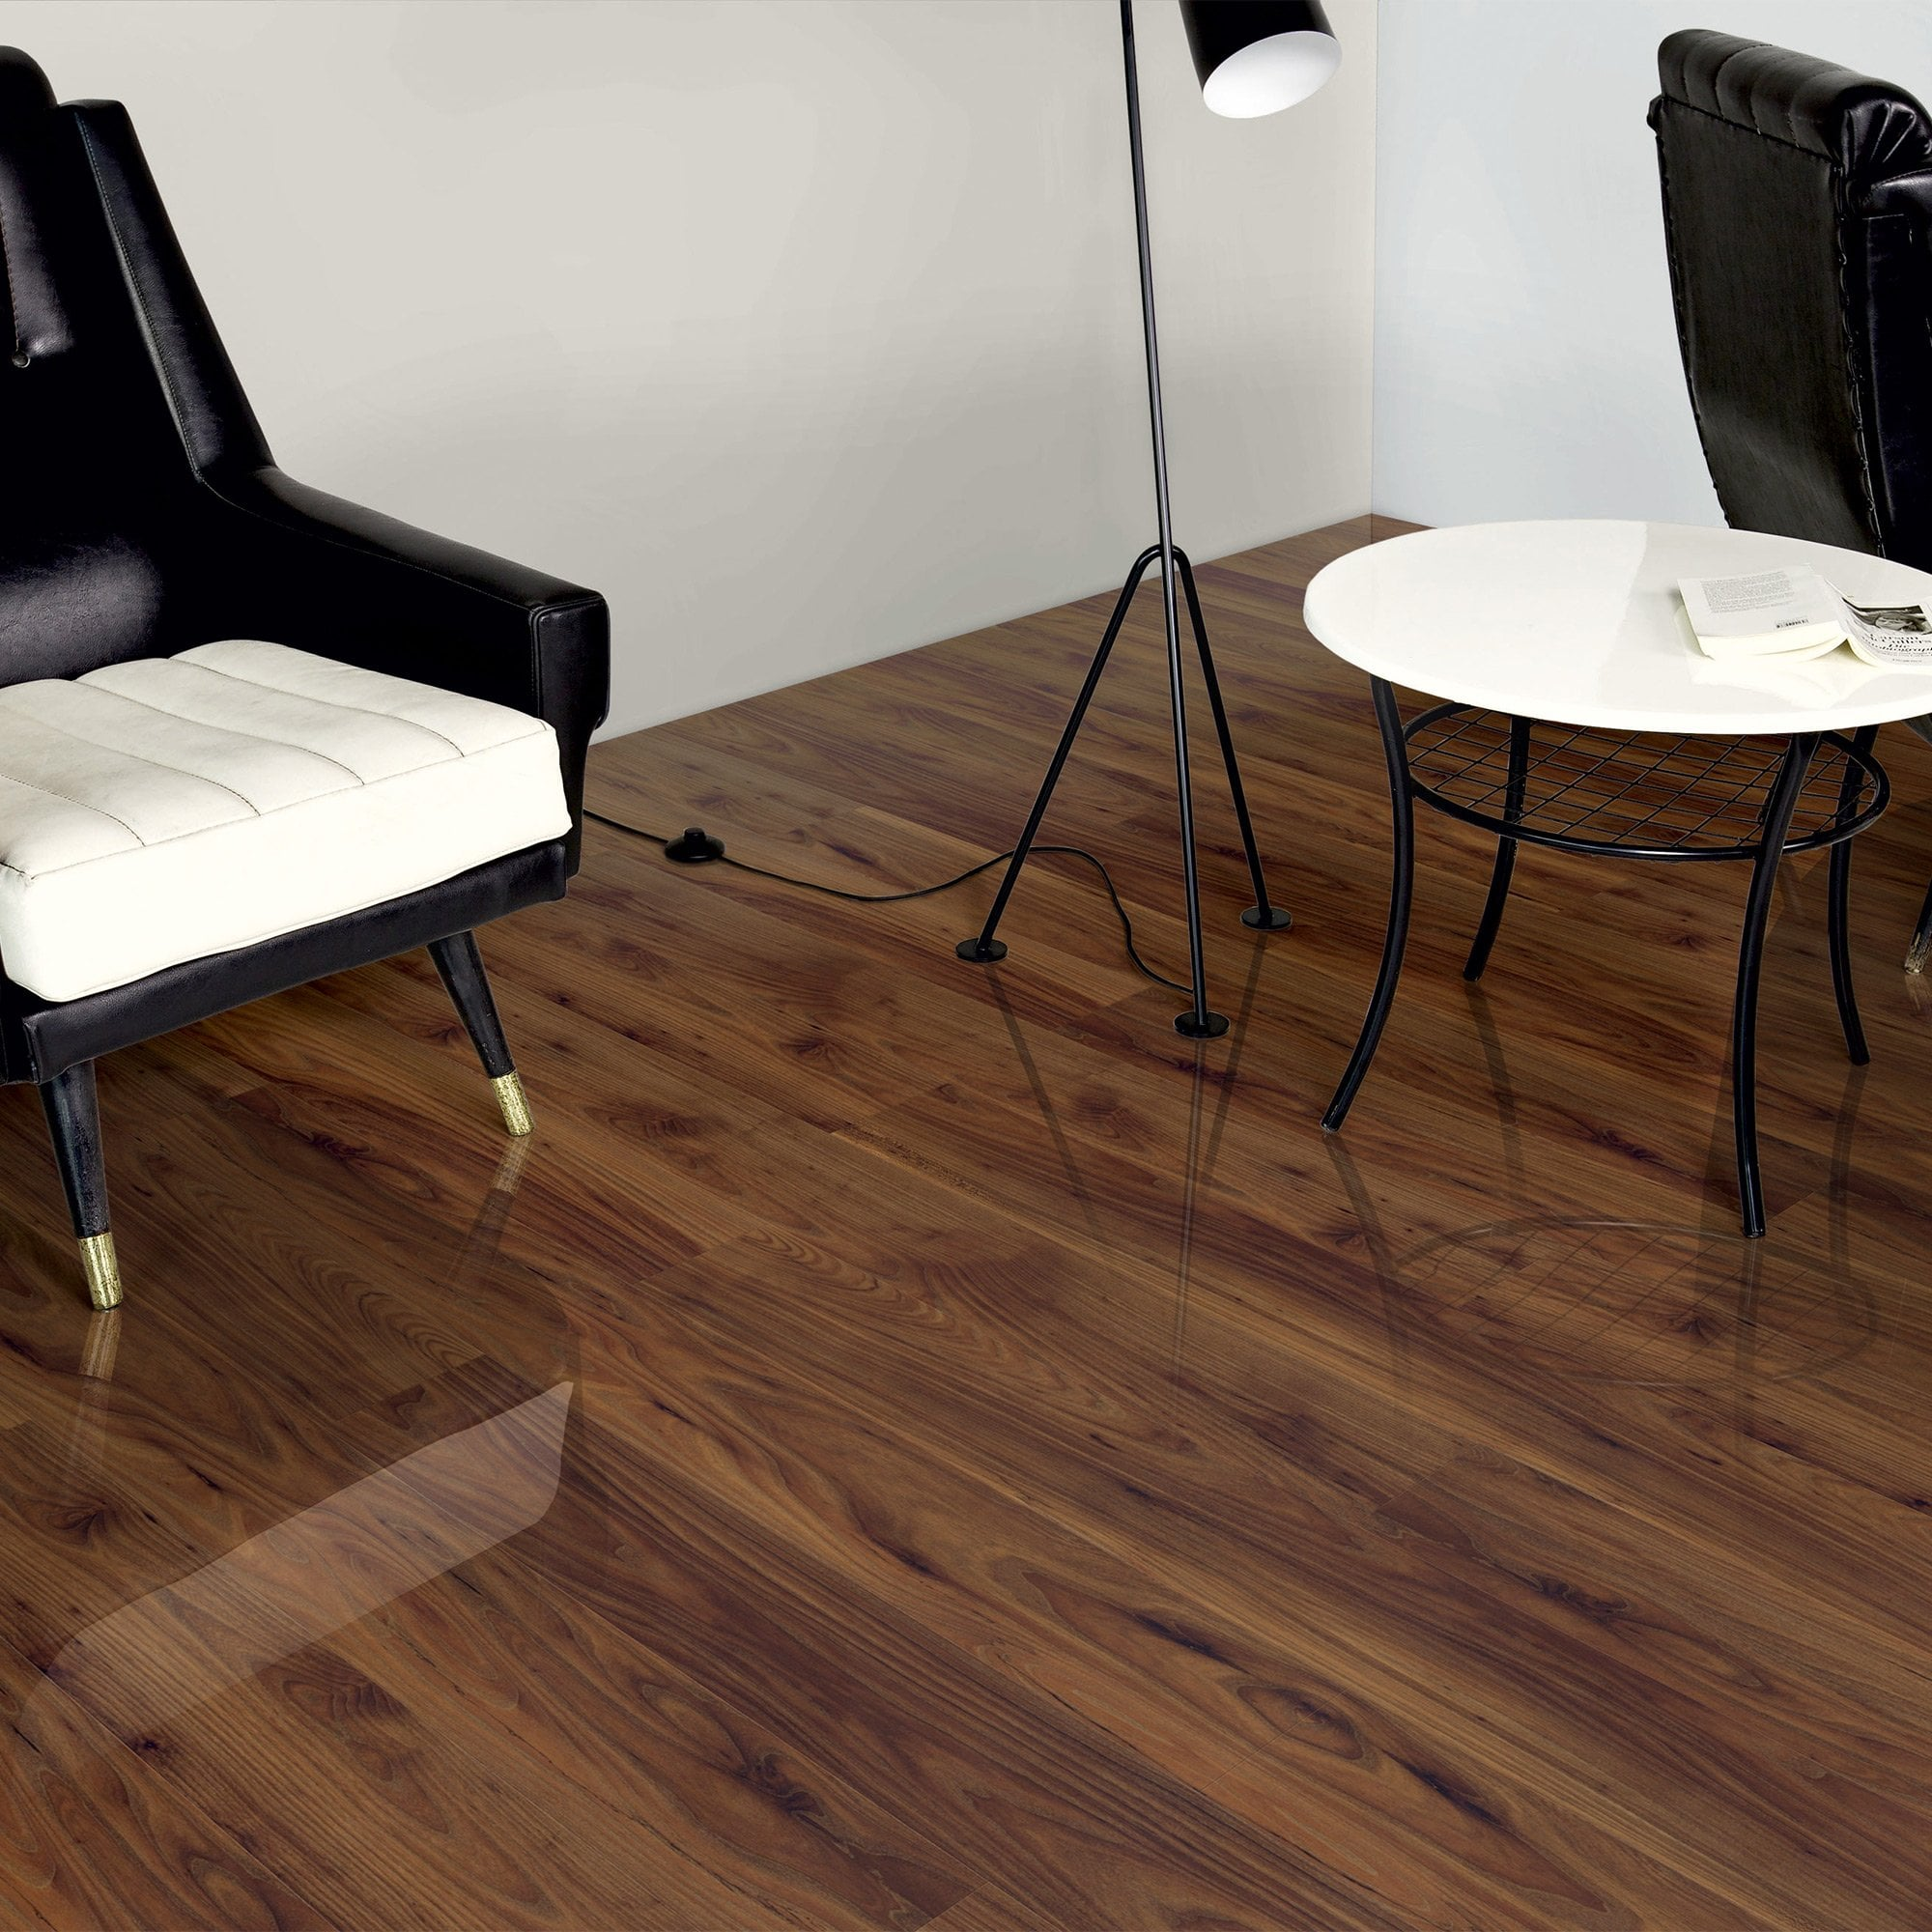 Home High Gloss 8mm Walnut Acacia 4V Laminate Flooring